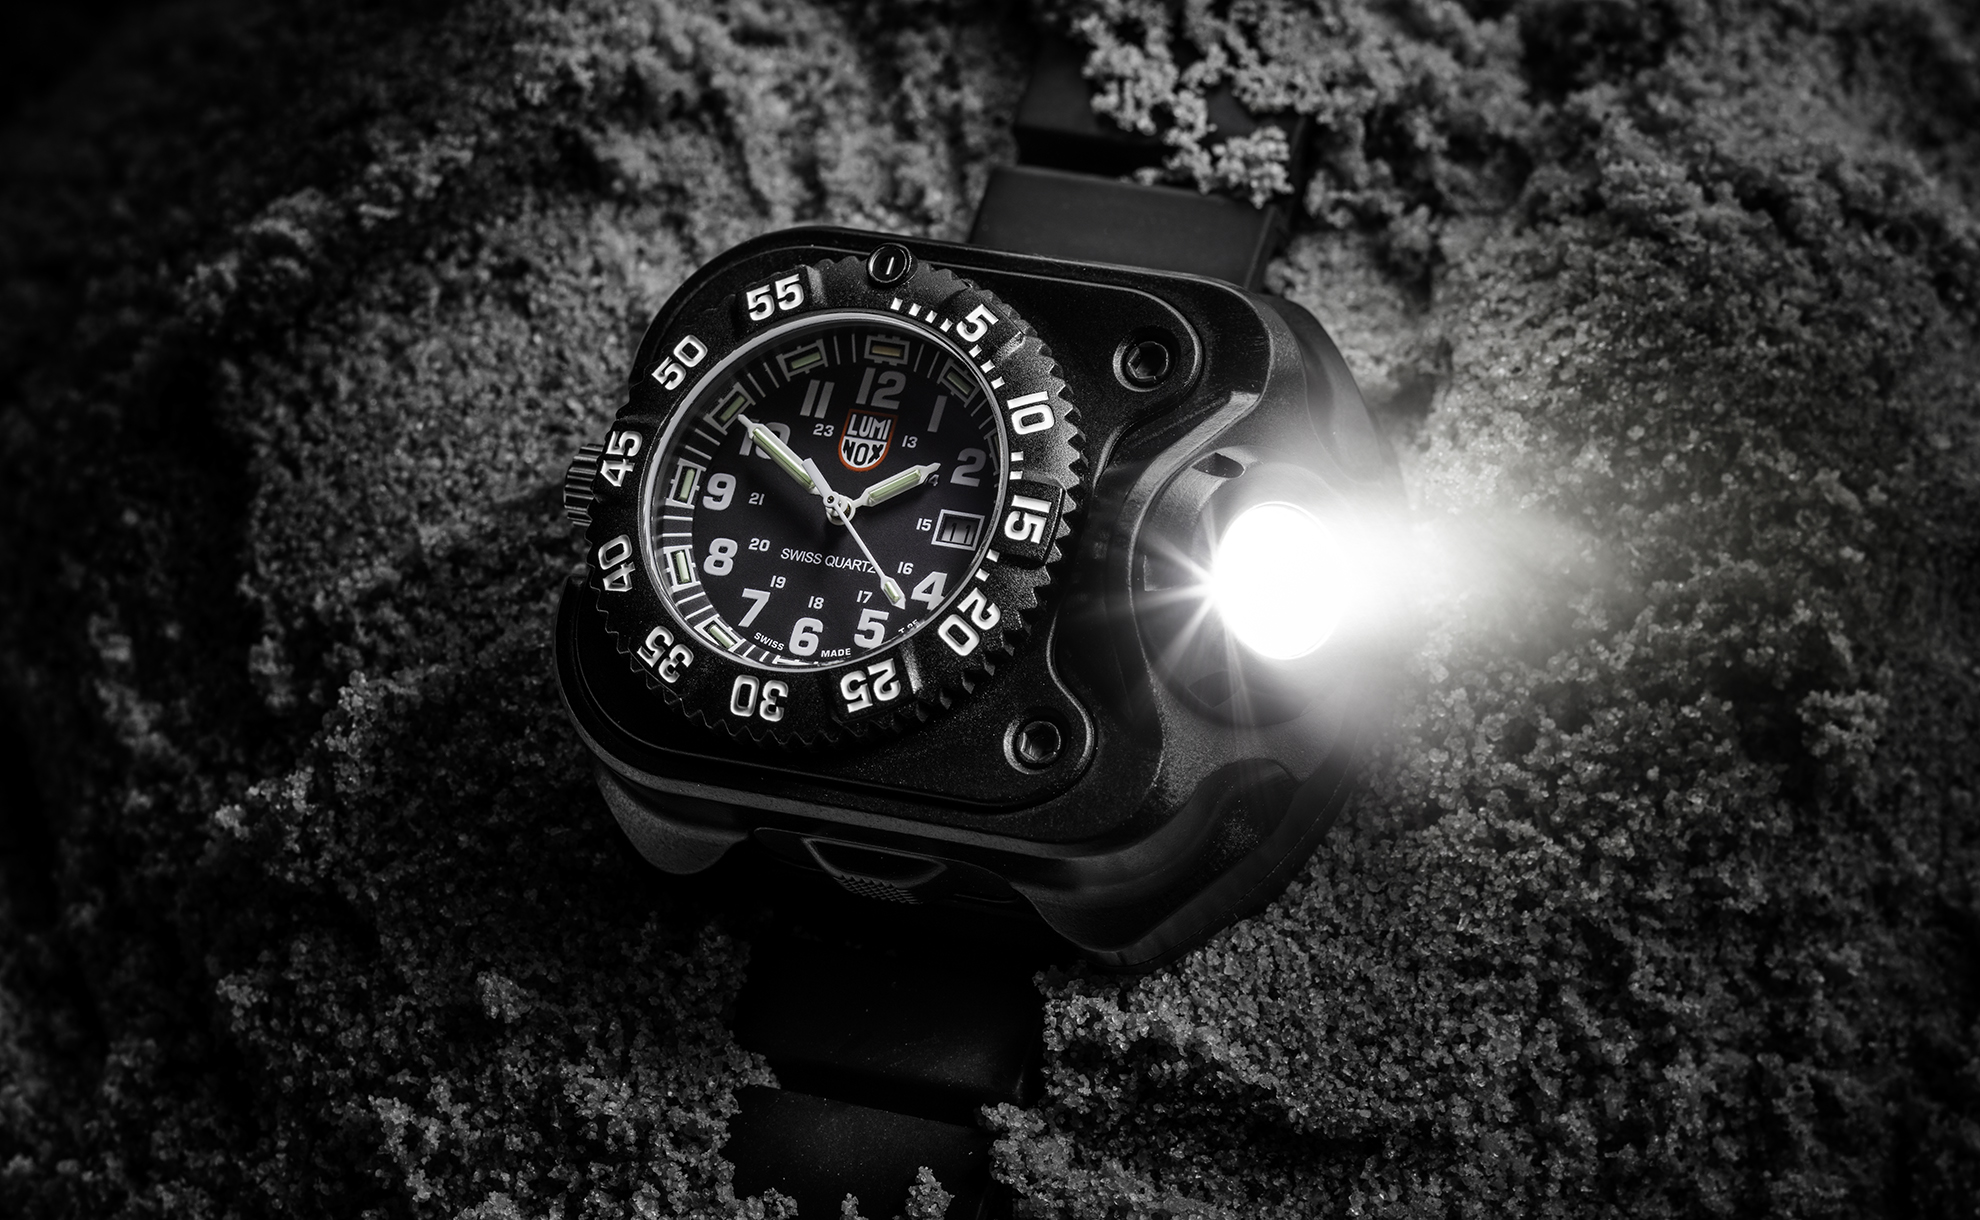 SureFire 2211 Luminox with 2211 Luminox watch